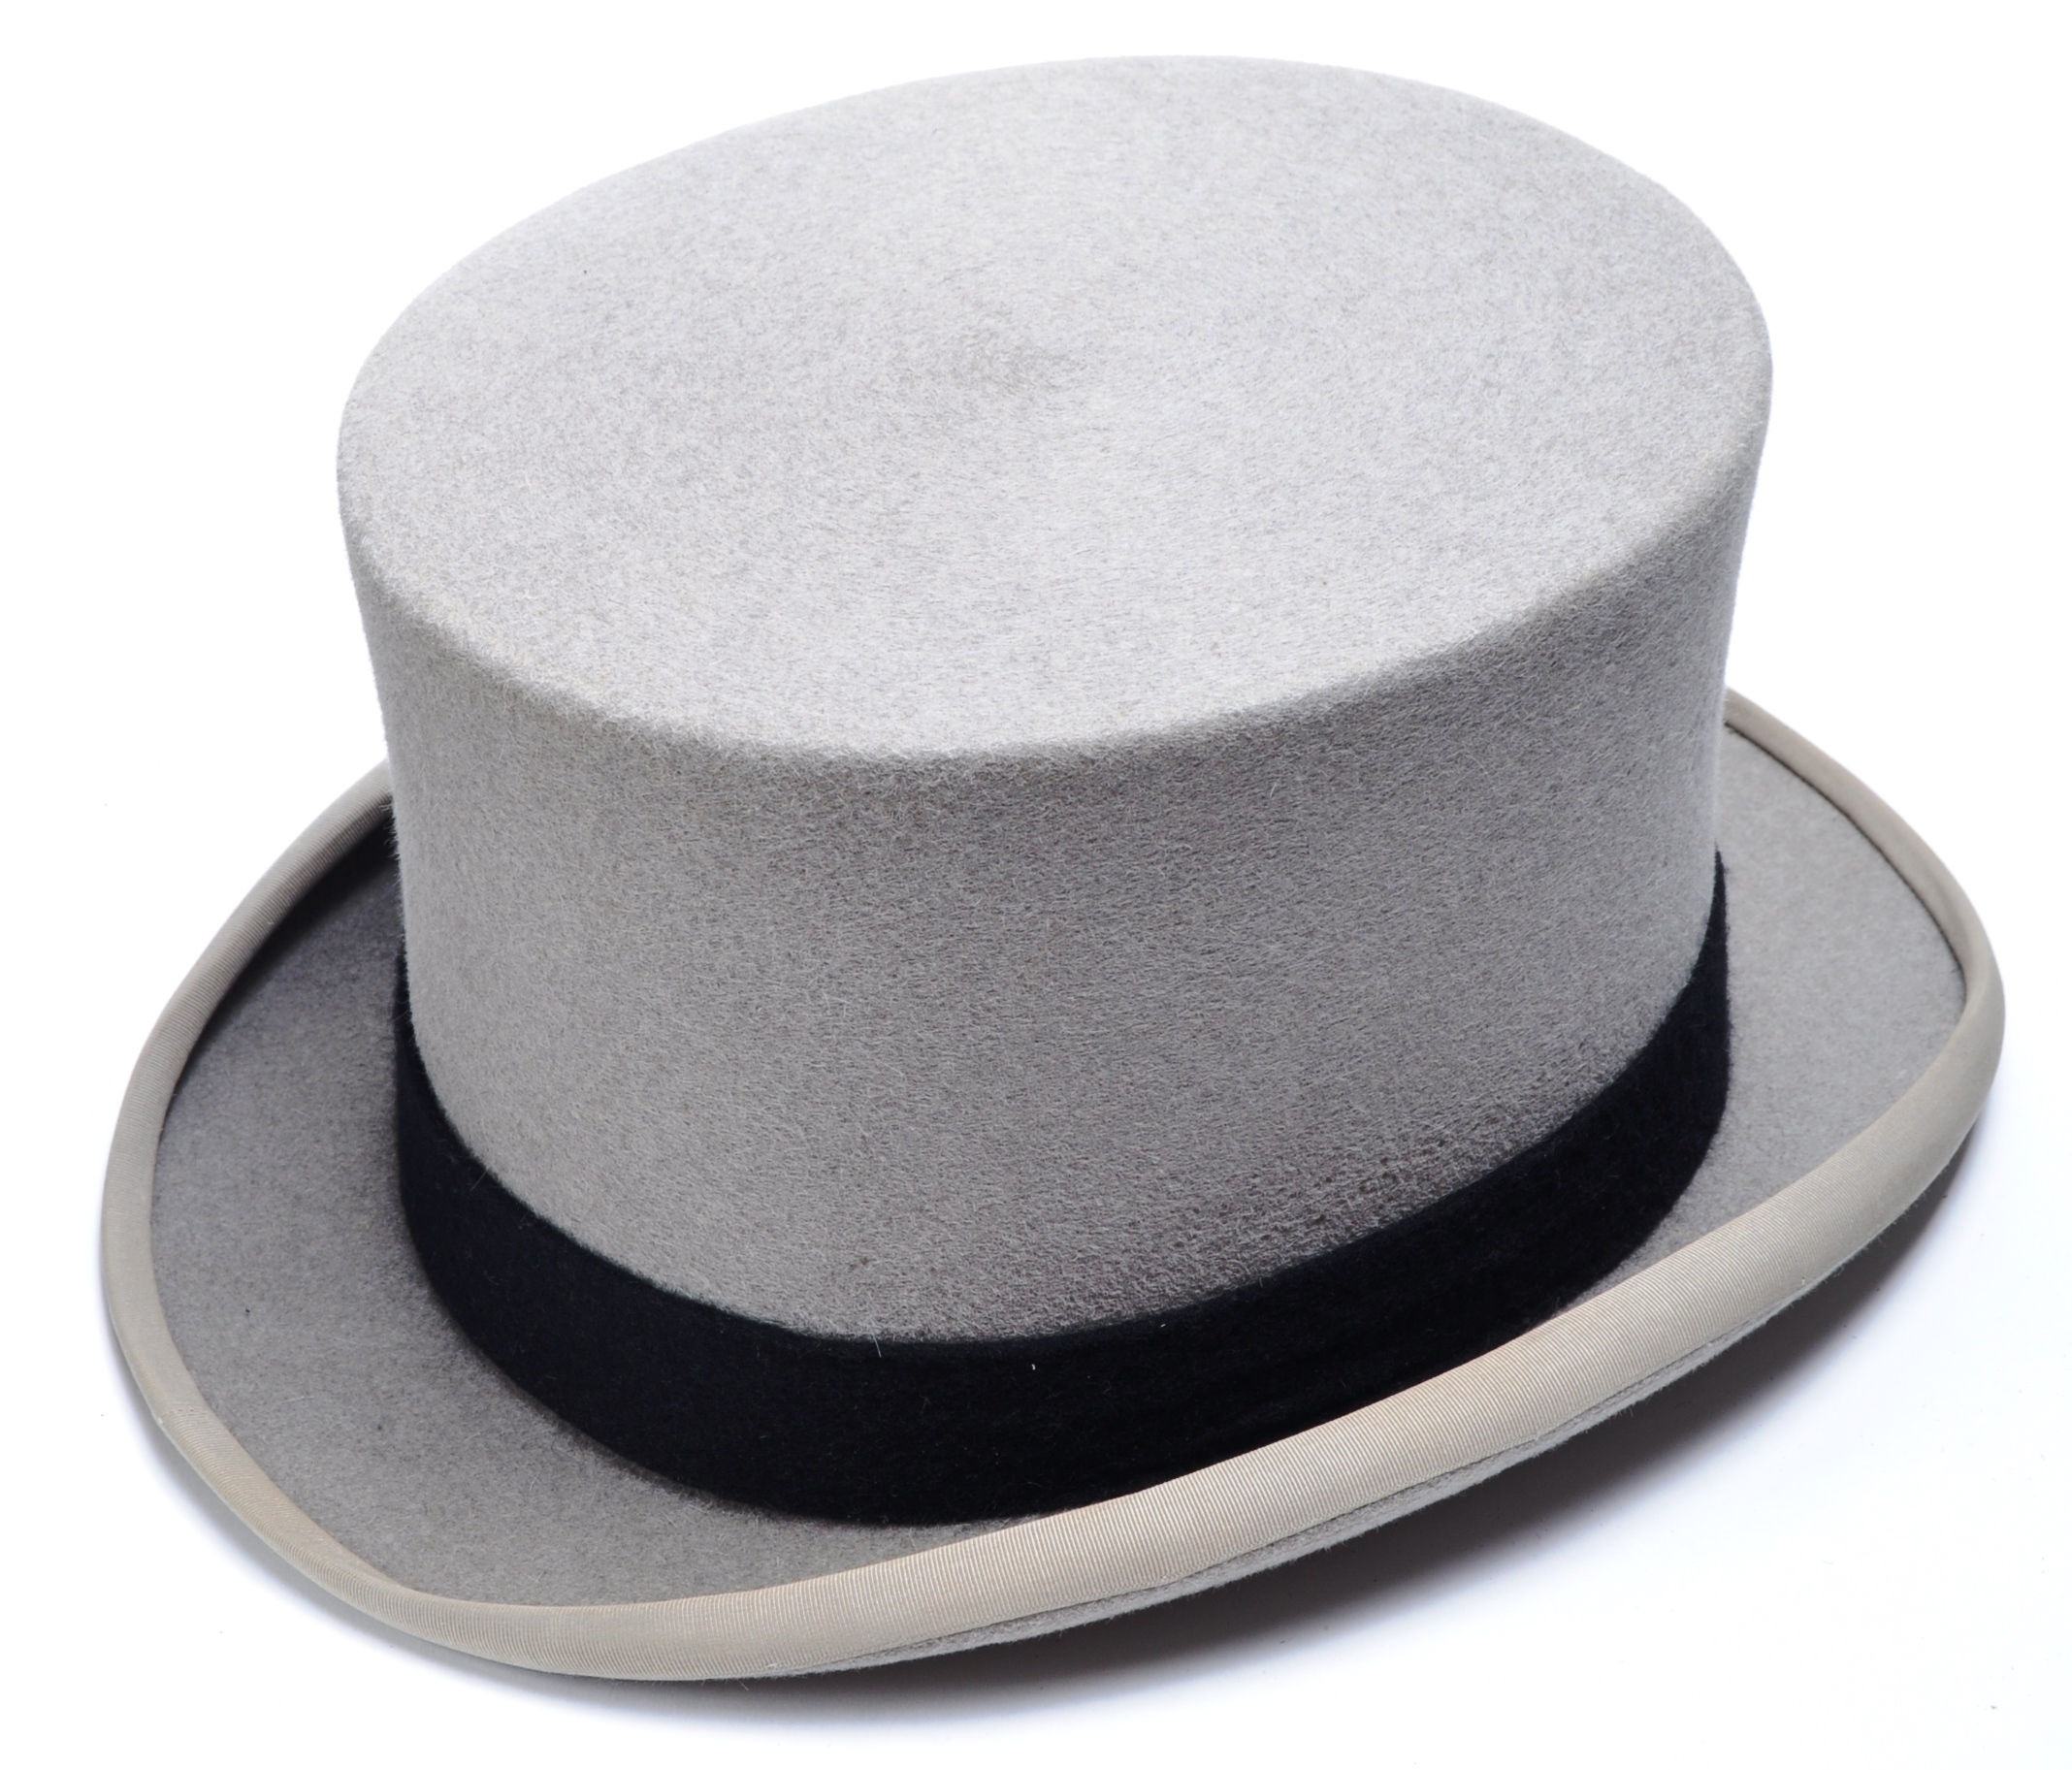 WWII SECOND WORLD WAR D-DAY INTEREST TOP HAT GROUP CAPTAIN MOSEBY - Image 10 of 13